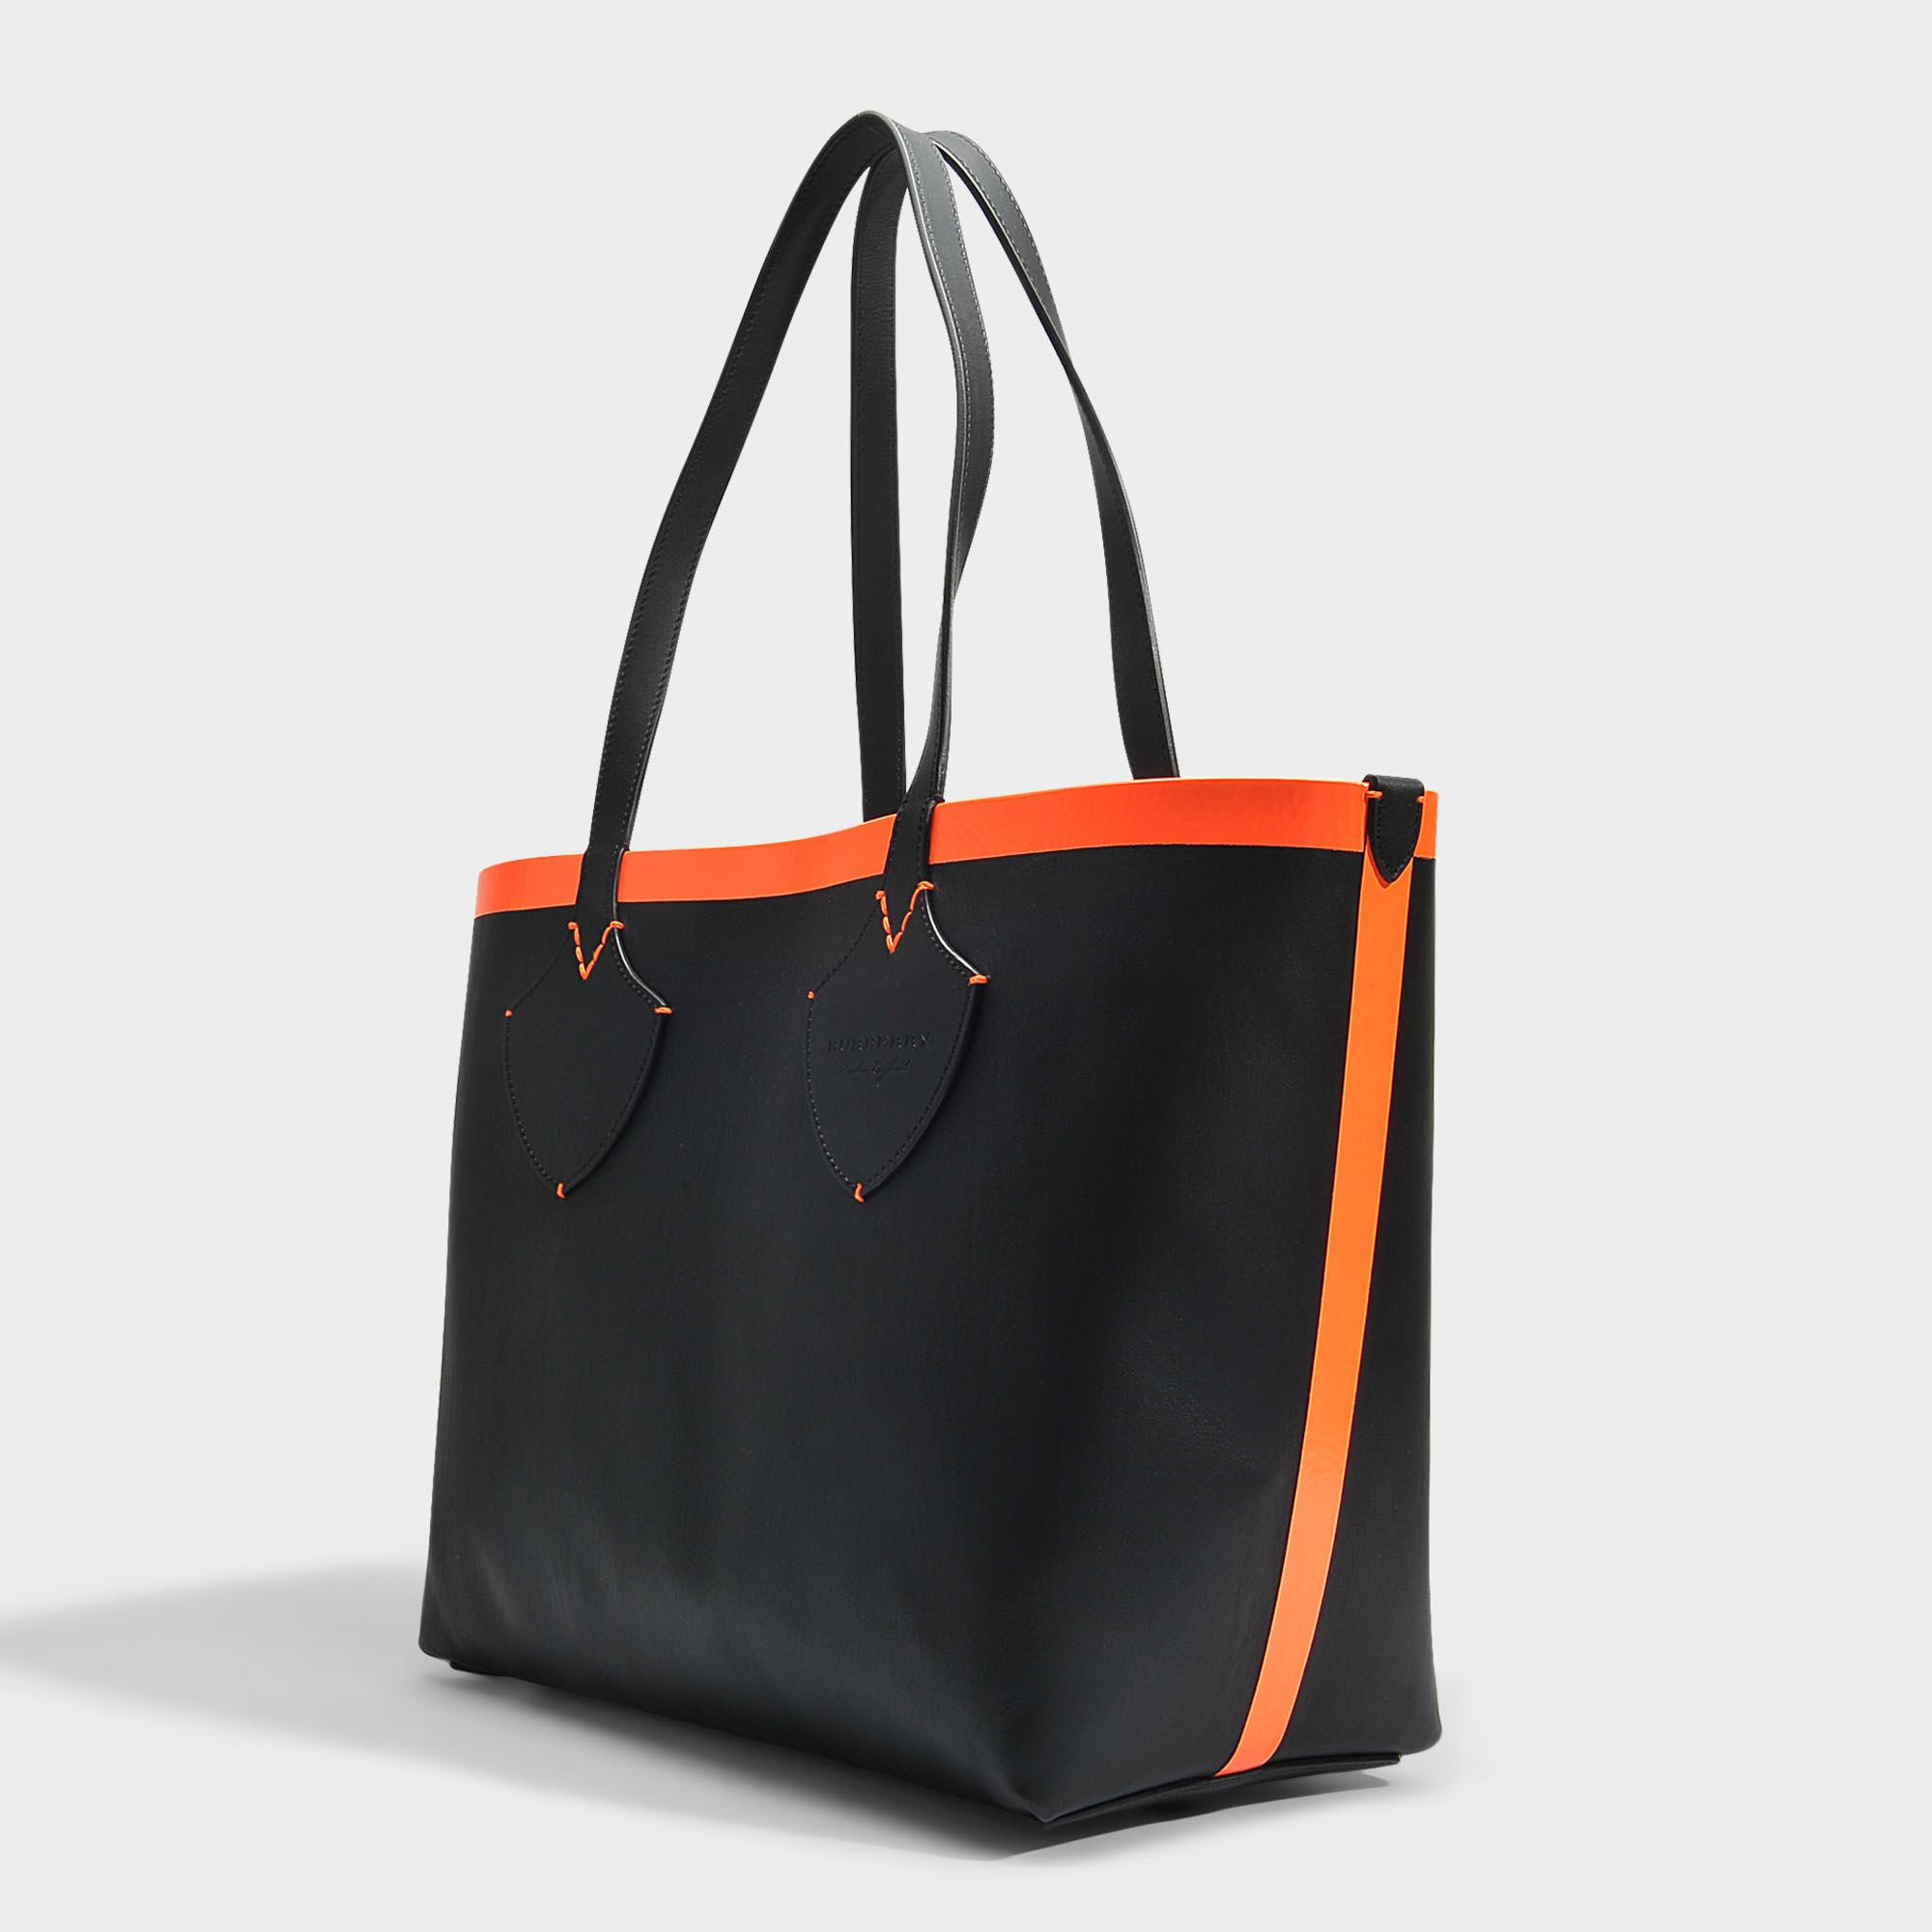 Medium Check Tote Bag in Black and Neon Orange Canvas and Calfskin Burberry 8dAyeP7O